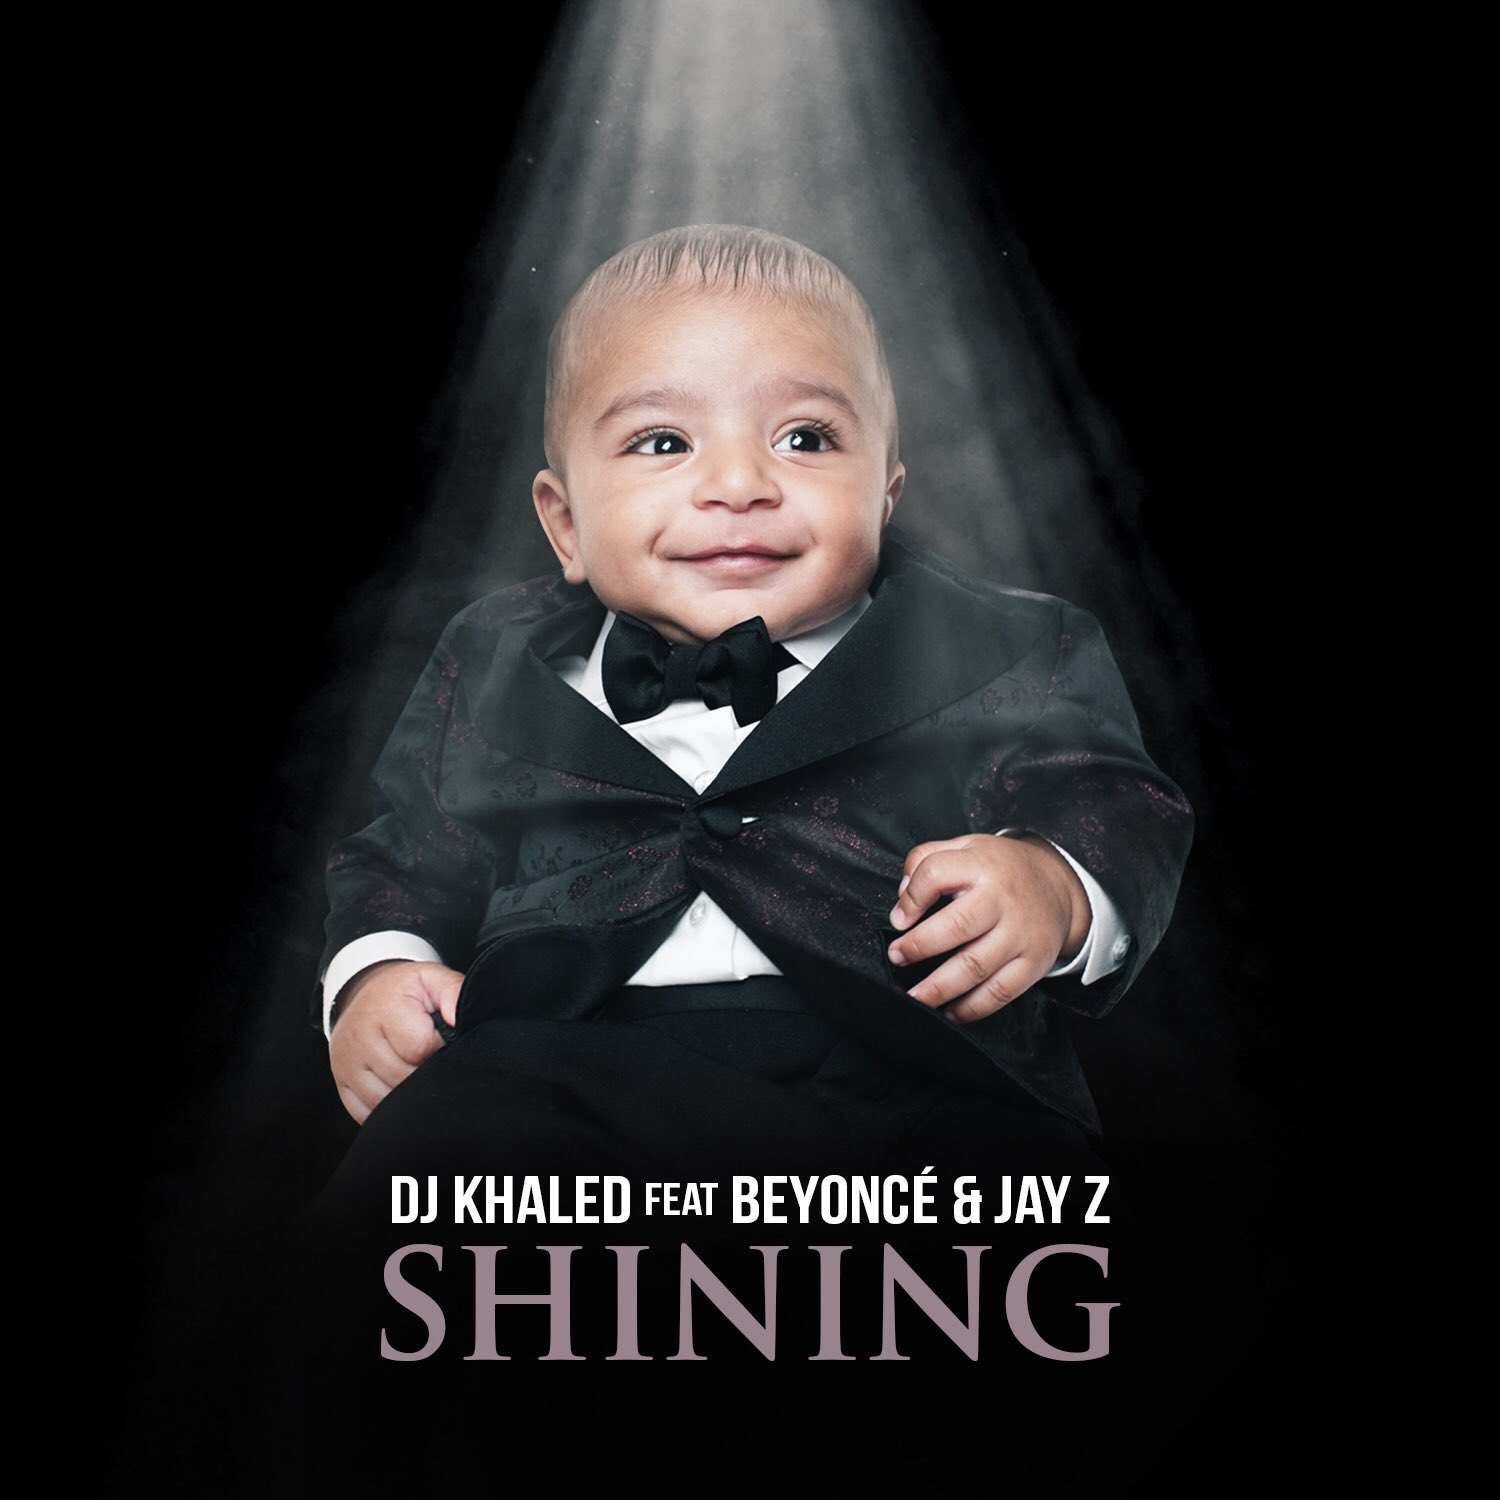 @djkhaled's new single 'Shining' feat. @beyonce & JAY Z Is available now! New Album #GRATEFUL Soon Come https://t.co/IZFLMjQq6E